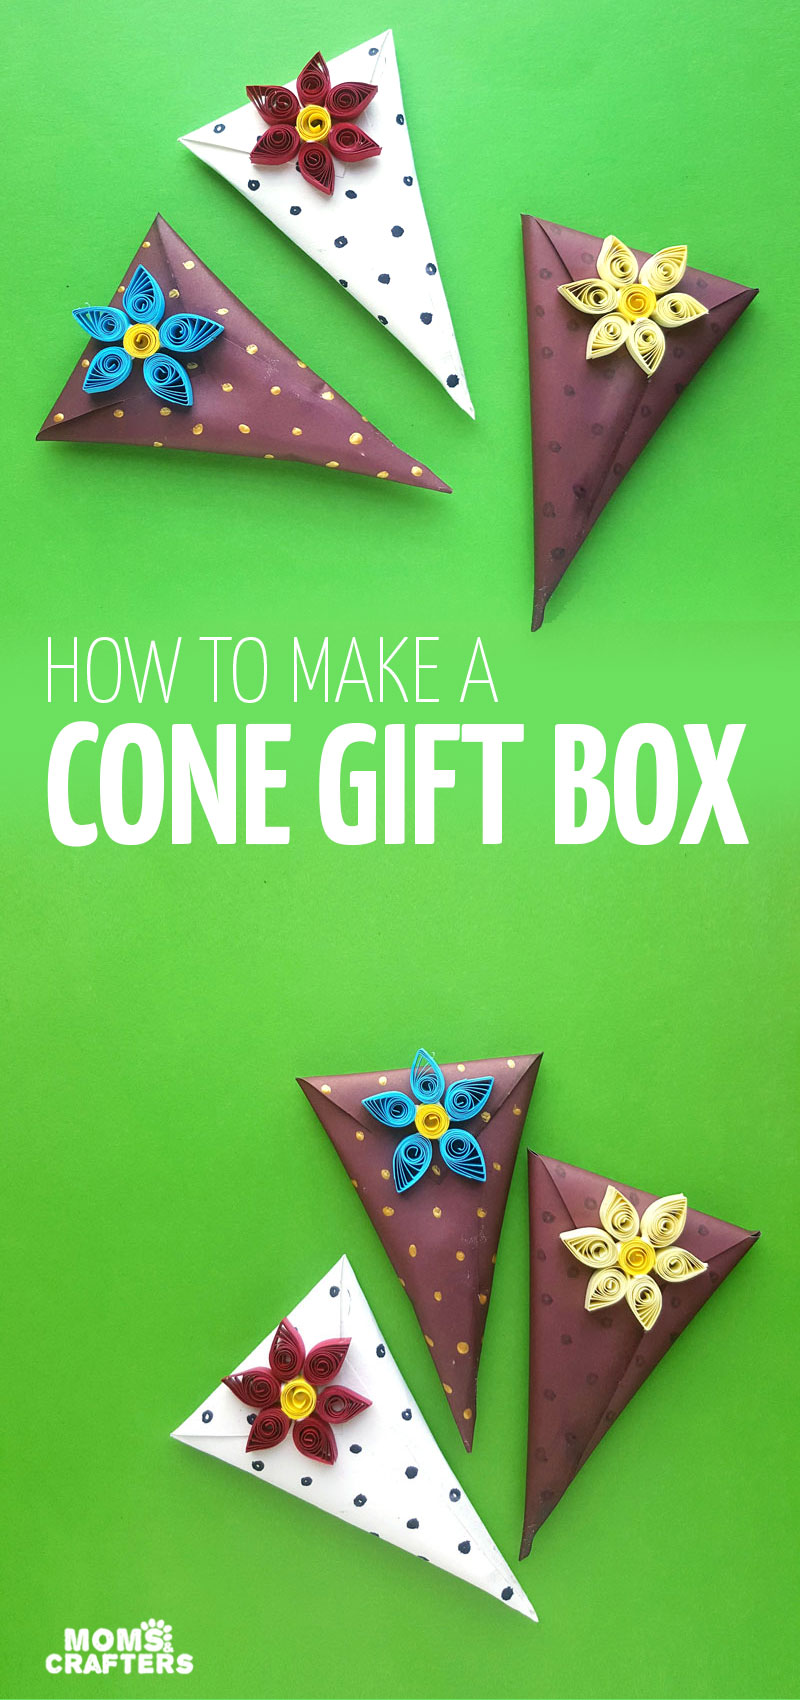 Click for an easy tutorial to make a DIY cone gift box - a fun DIY gift wrapping tutorial perfect for Valentine's Day chocolate, or for Christmas or any holiday.